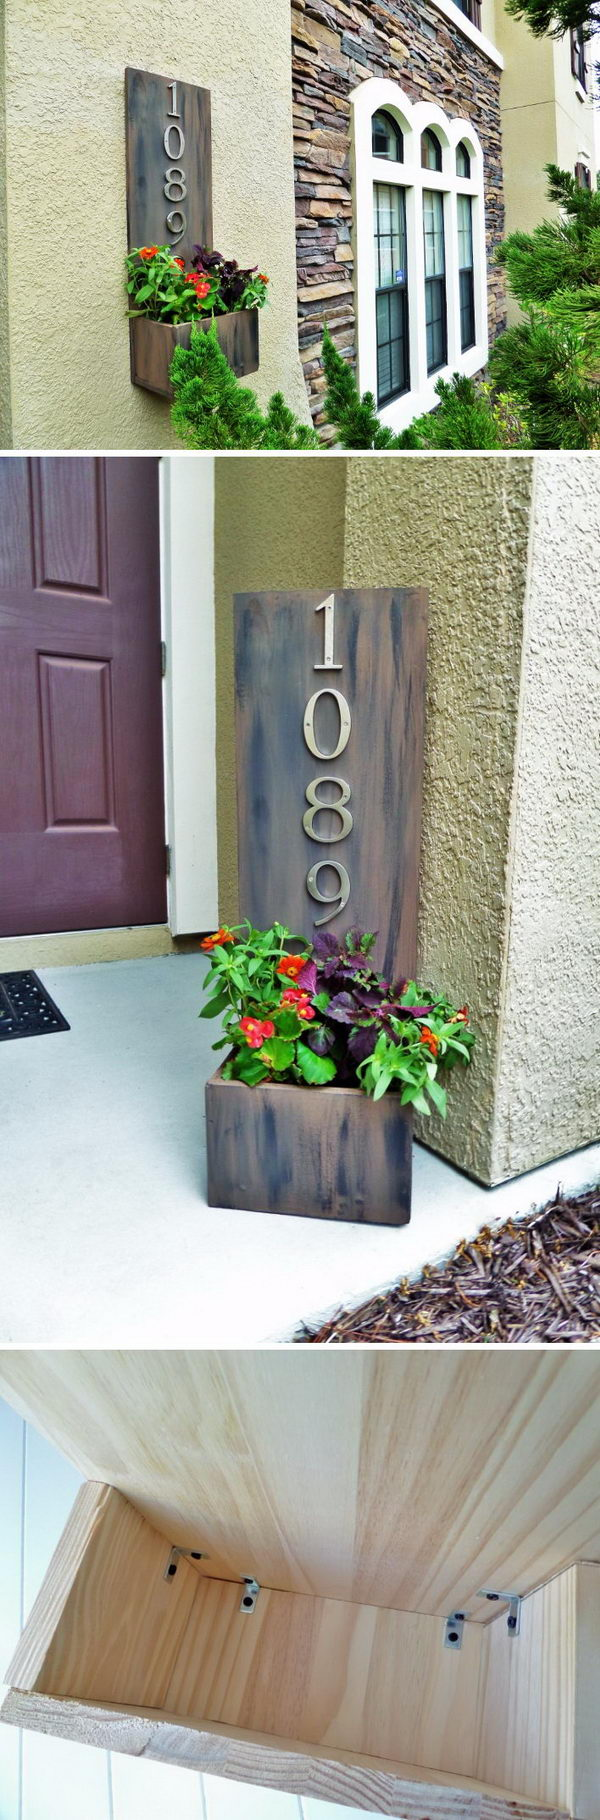 DIY Address Plaque Planter Box.